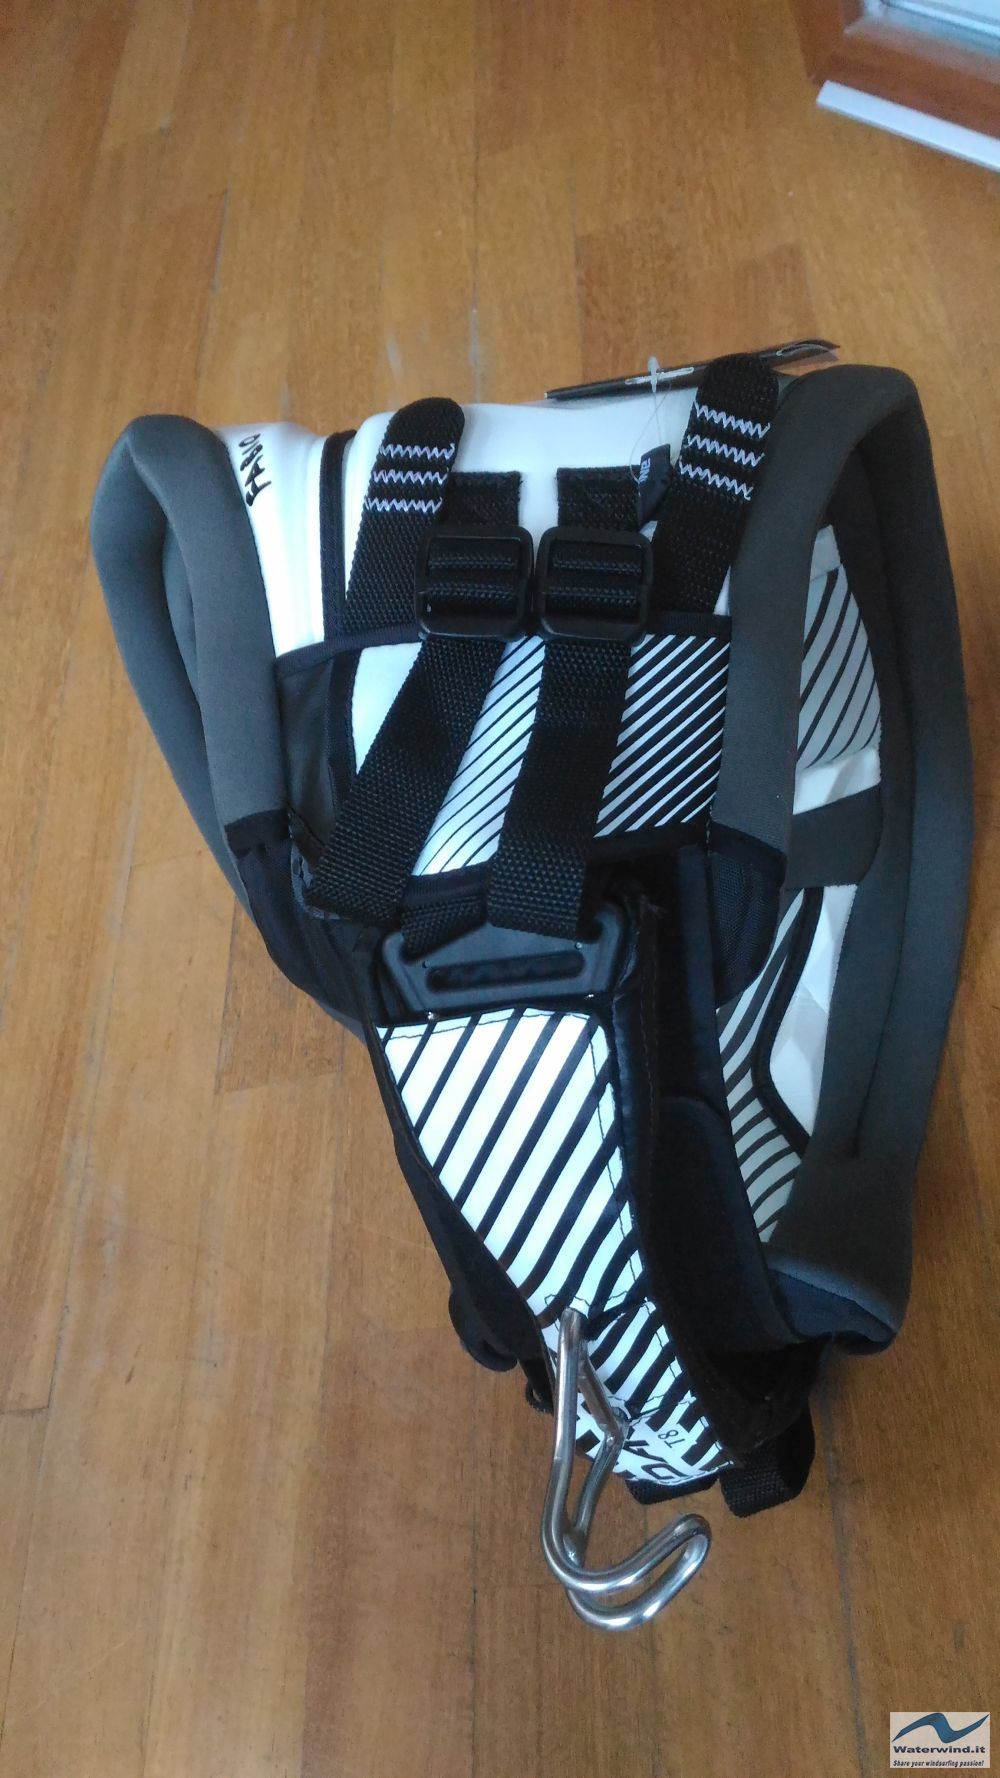 Windsurf Dakine Harness 5